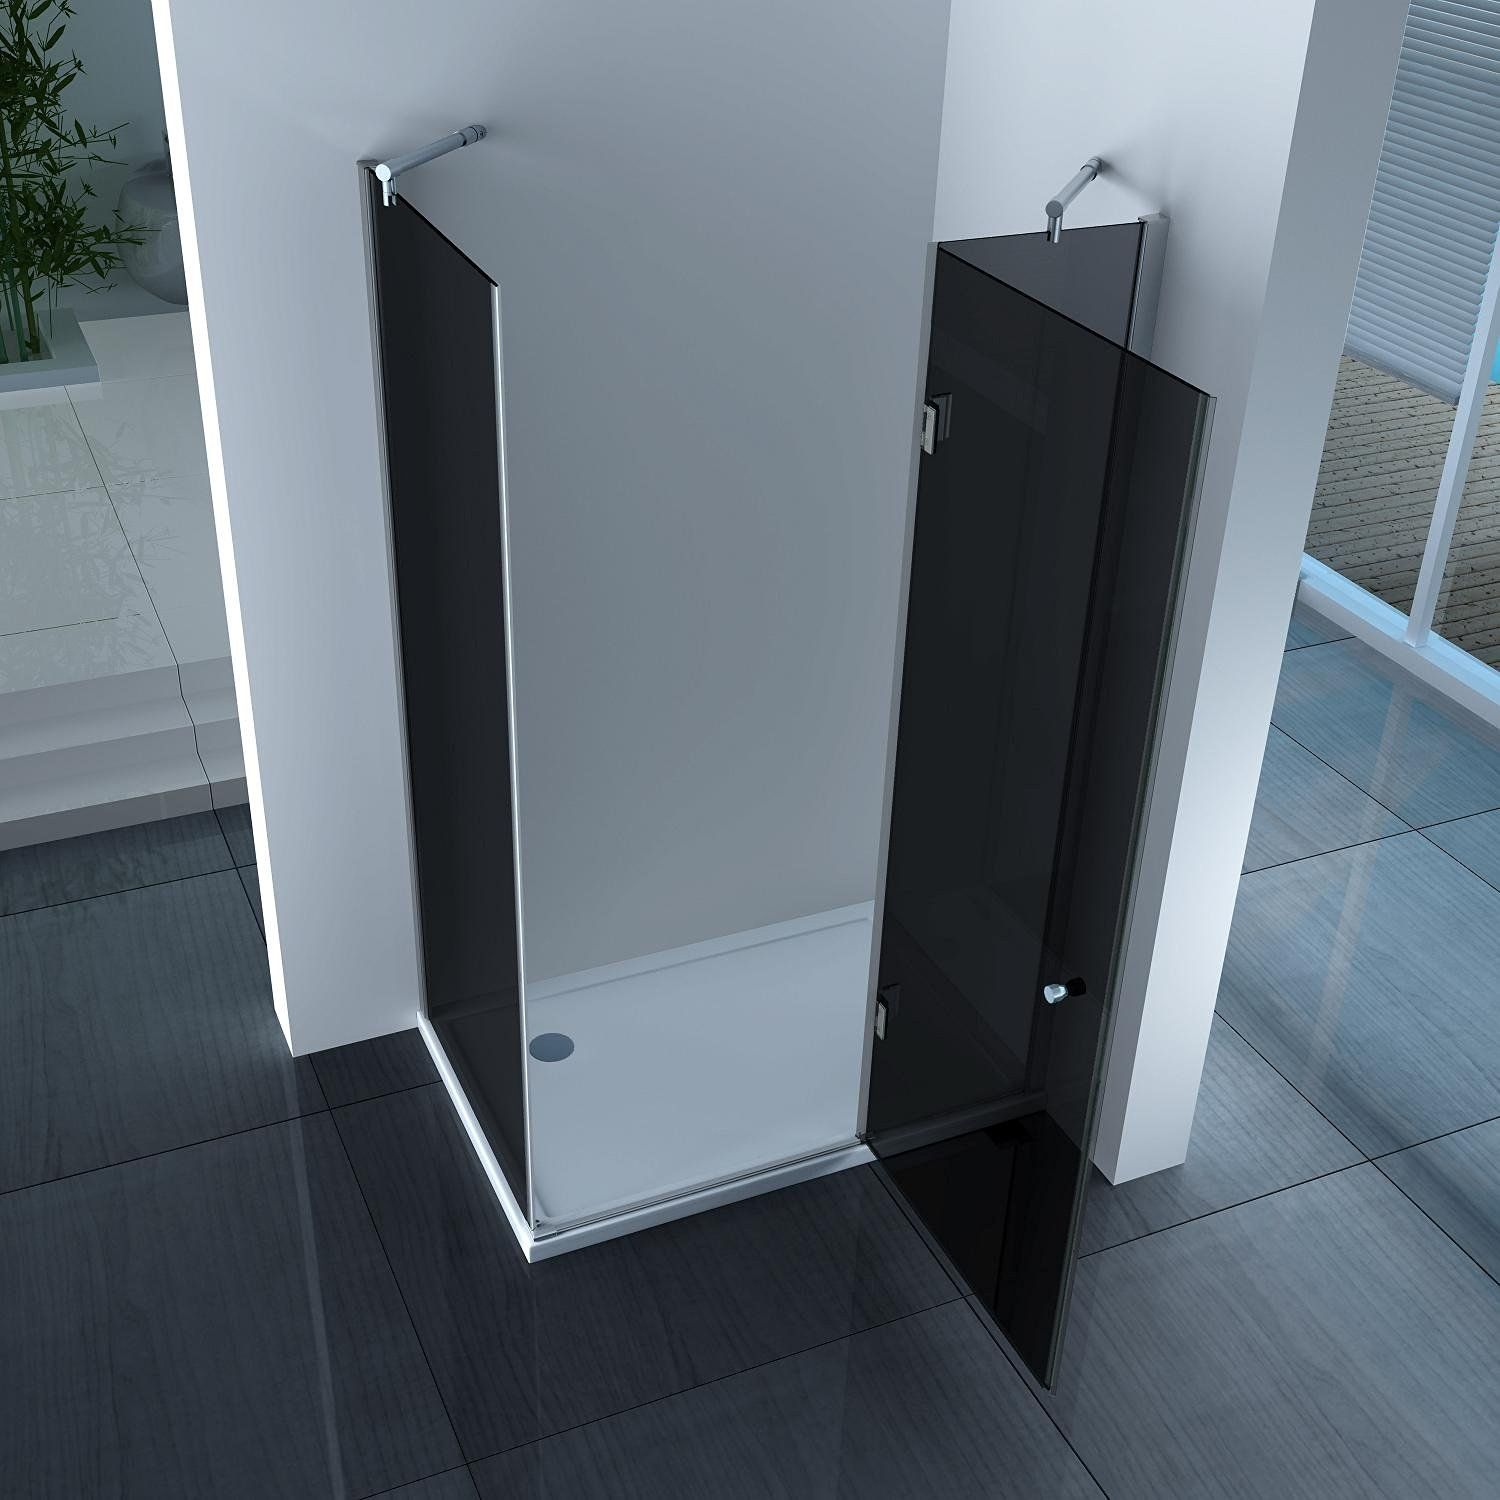 corner-shower-enclosure-swing-door-box006-6_1543568728_781